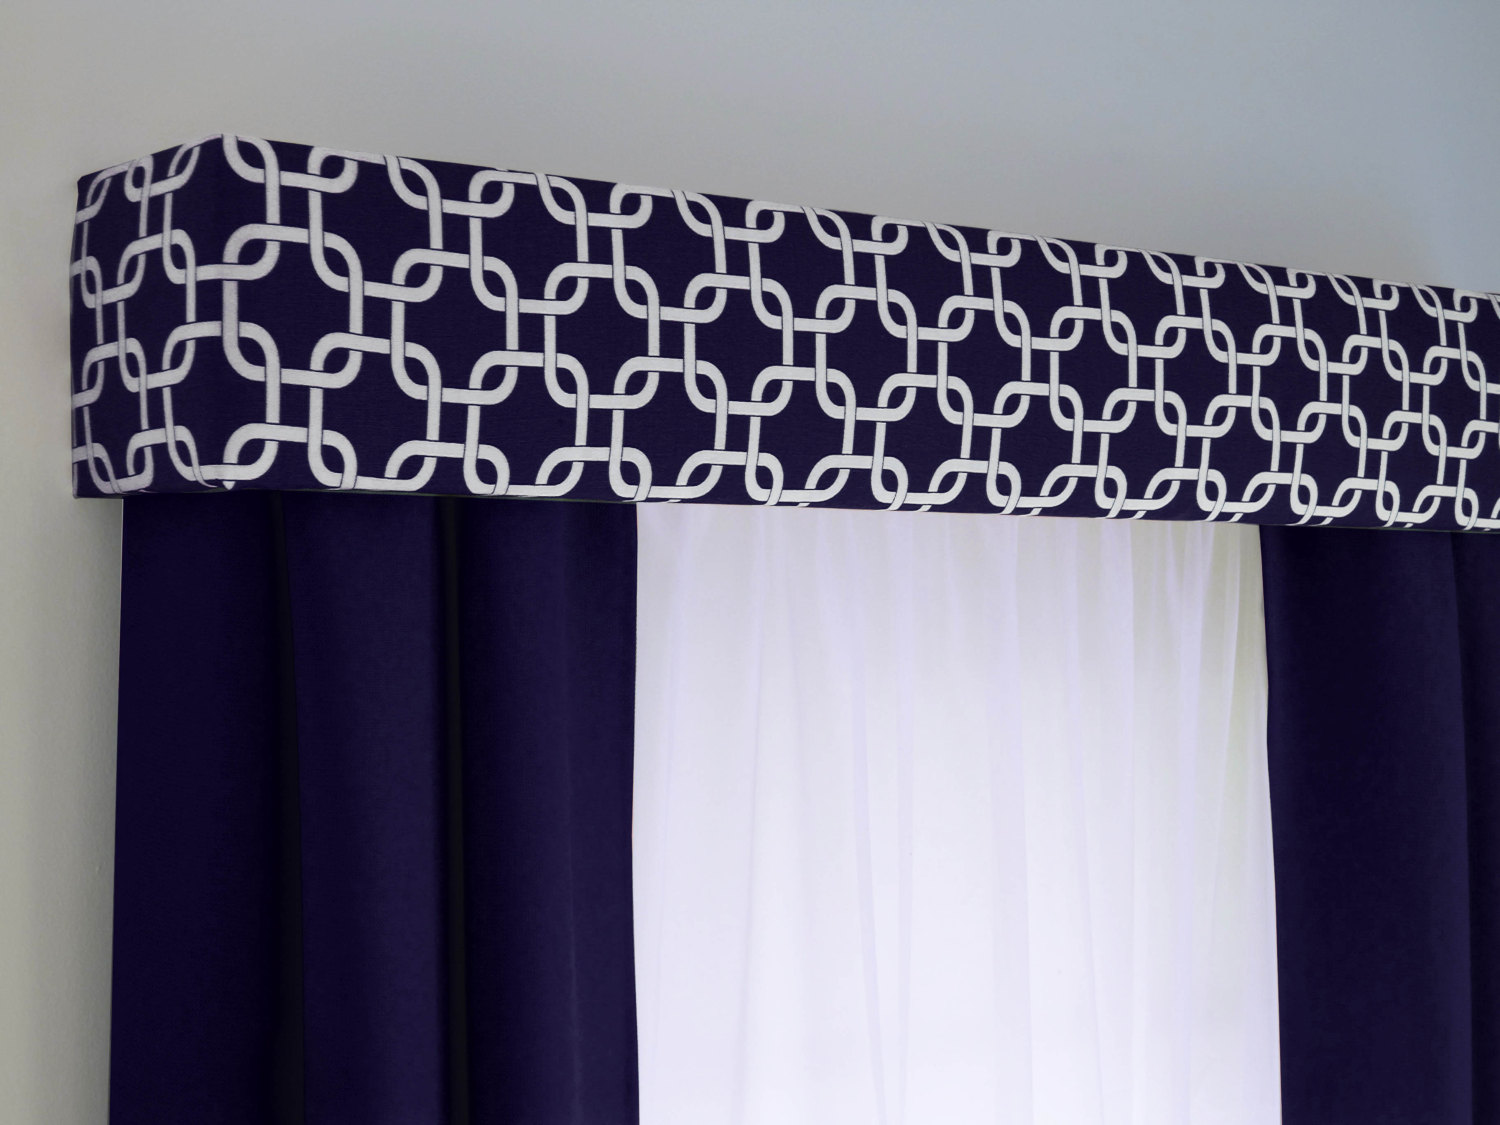 Navy Blue Geometric Cornice Board Valance Window Treatment.